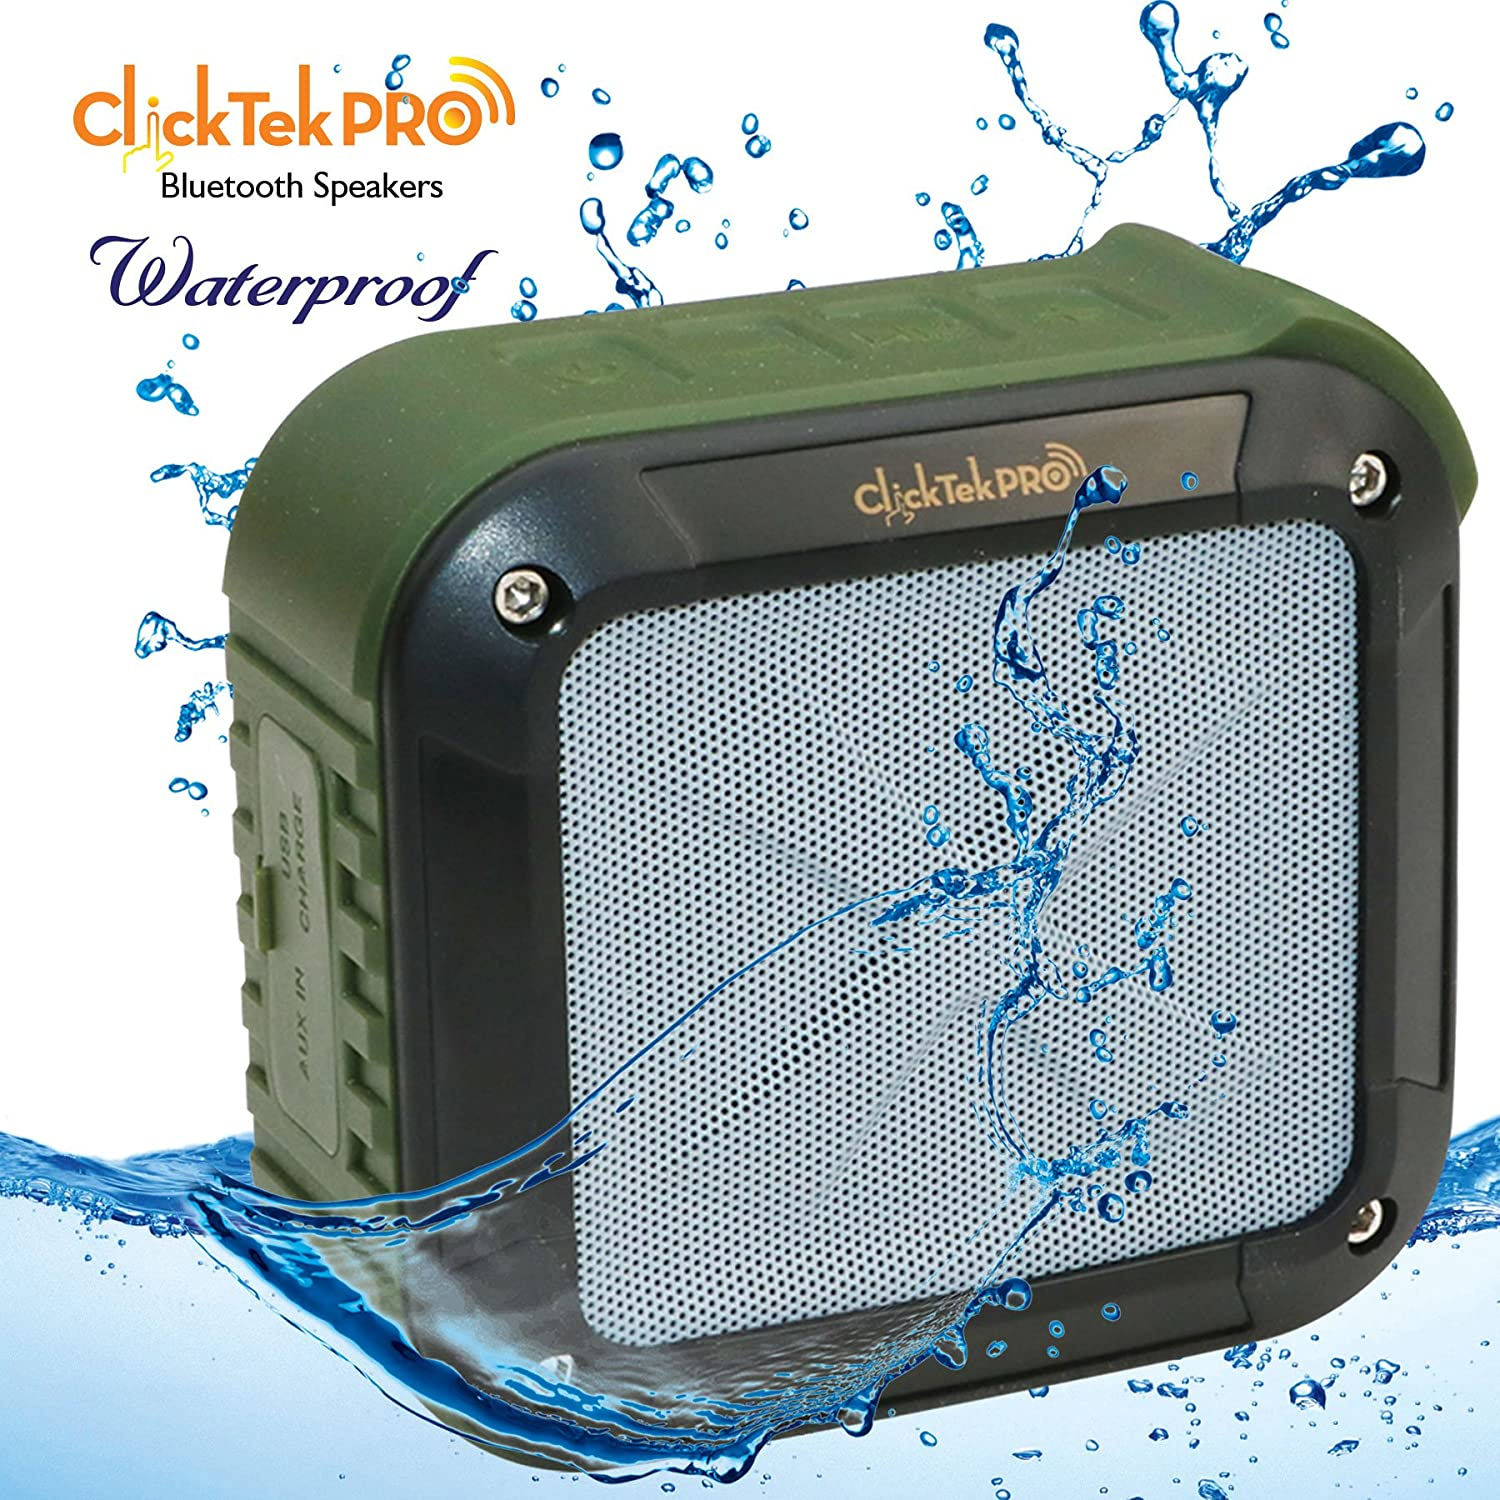 Wireless Bluetooth Speakers - Best Portable Speakers - Waterproof, Dust  Proof, Shock proof - For Home, Shower, Car, Traveling, Beach - Pairs with